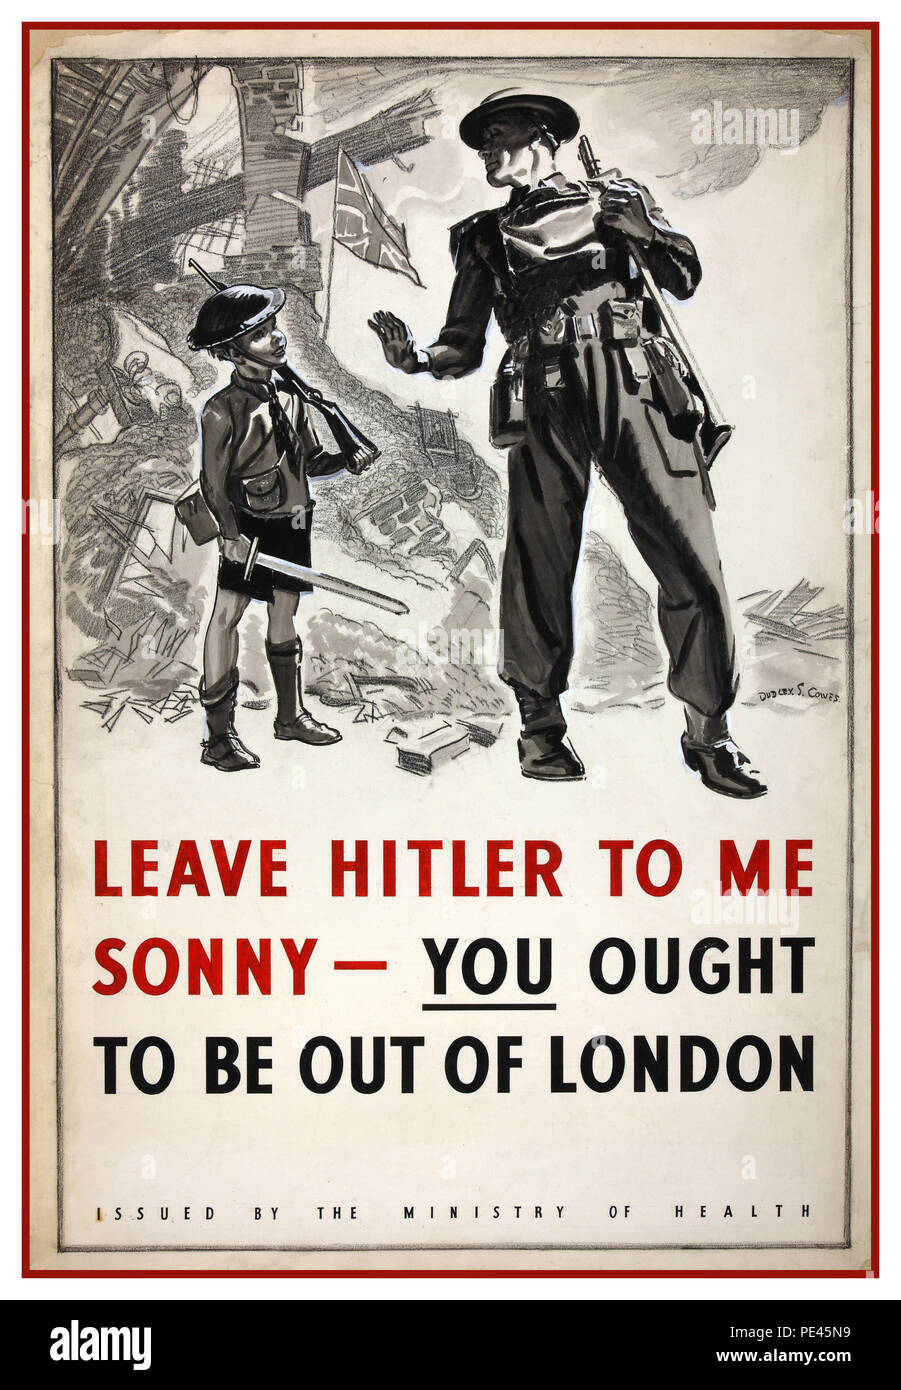 Vintage British WW2 World War II Propaganda Poster A poster designed for the Ministry of Health in the latter part of 1940 to reinforce the message that children should be evacuated out of London. The background to the poster shows a 'blitzed' street with the Union Flag flying defiantly from the rubble. - Stock Image